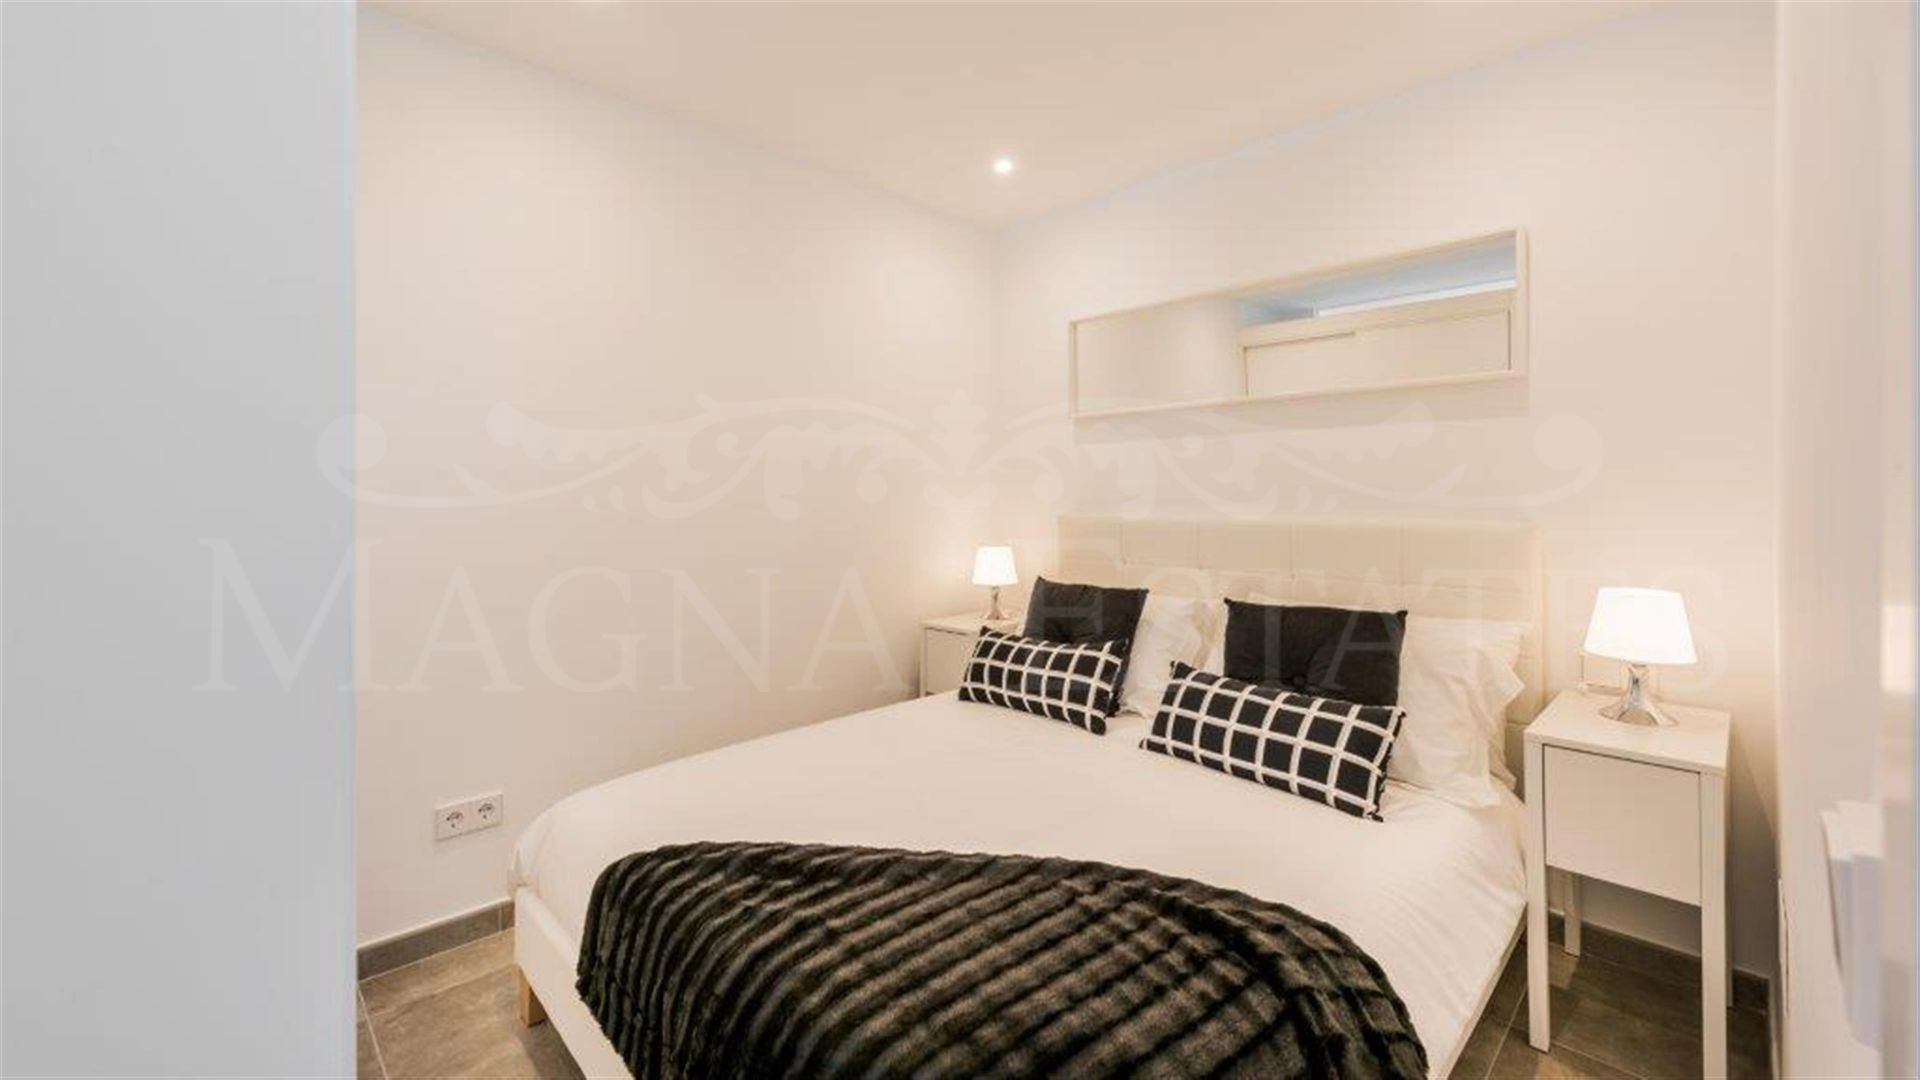 Townhouse very renovated and furnished in Nueva Andalucia and first line golf Aloha